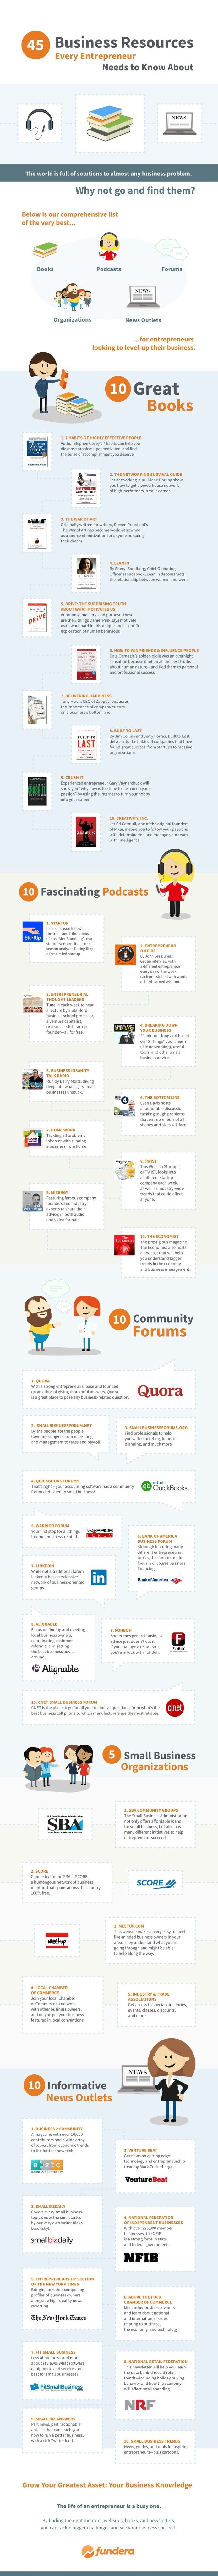 45 Business Resources Every Entrepreneur Needs to Know About - #infographic